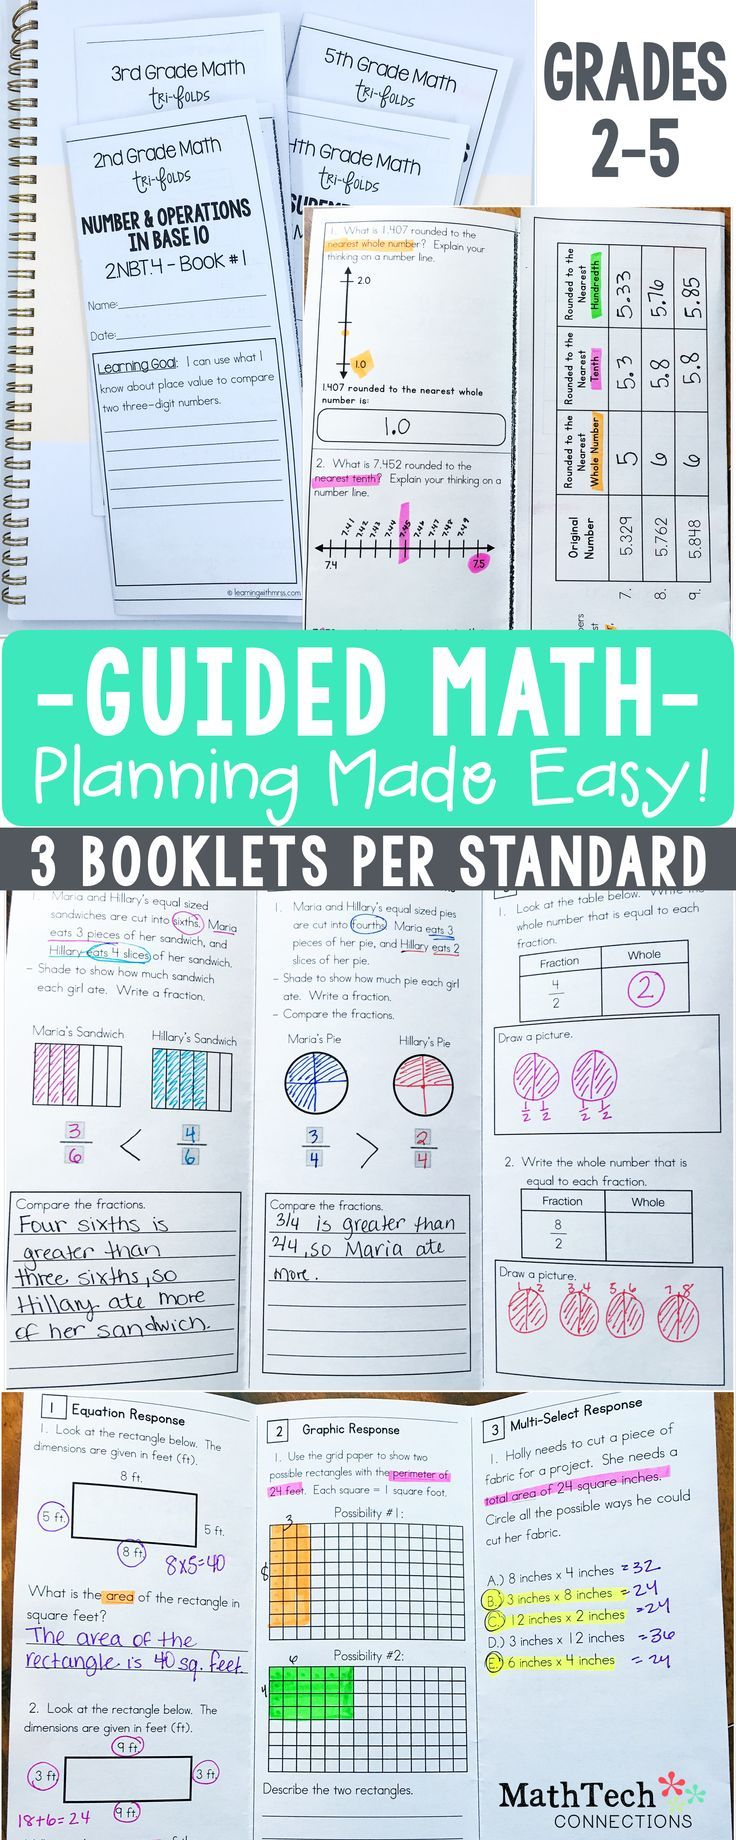 180 best Homeschool Math images on Pinterest | Math activities ...